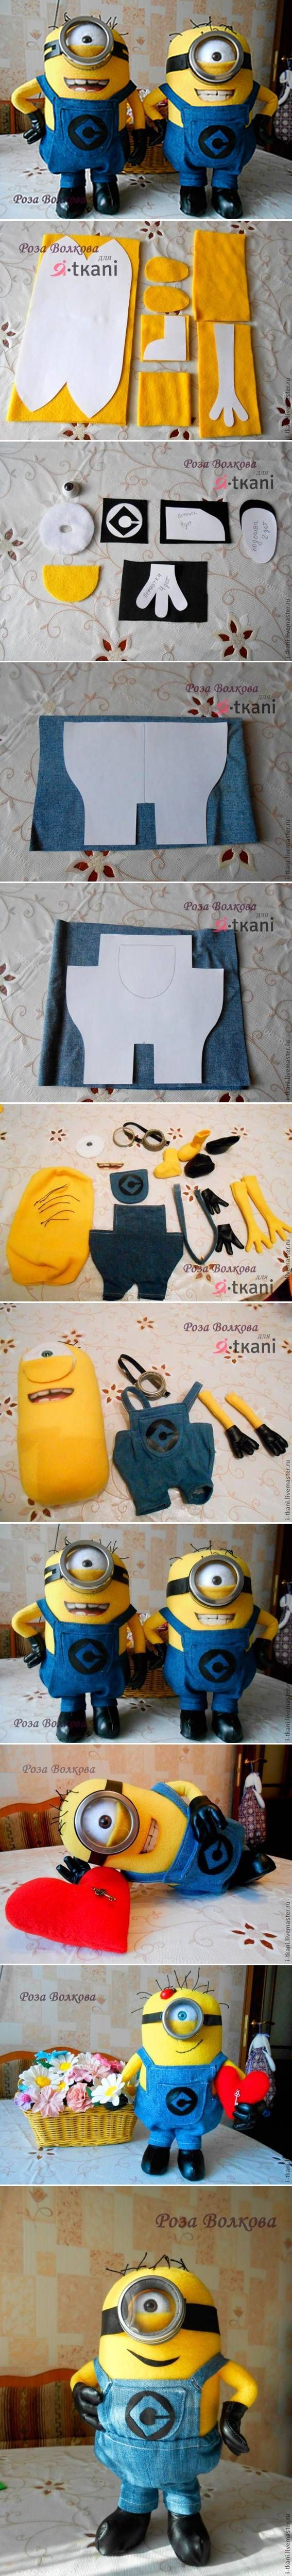 DIY Minion Dolls DIY Minion Dolls